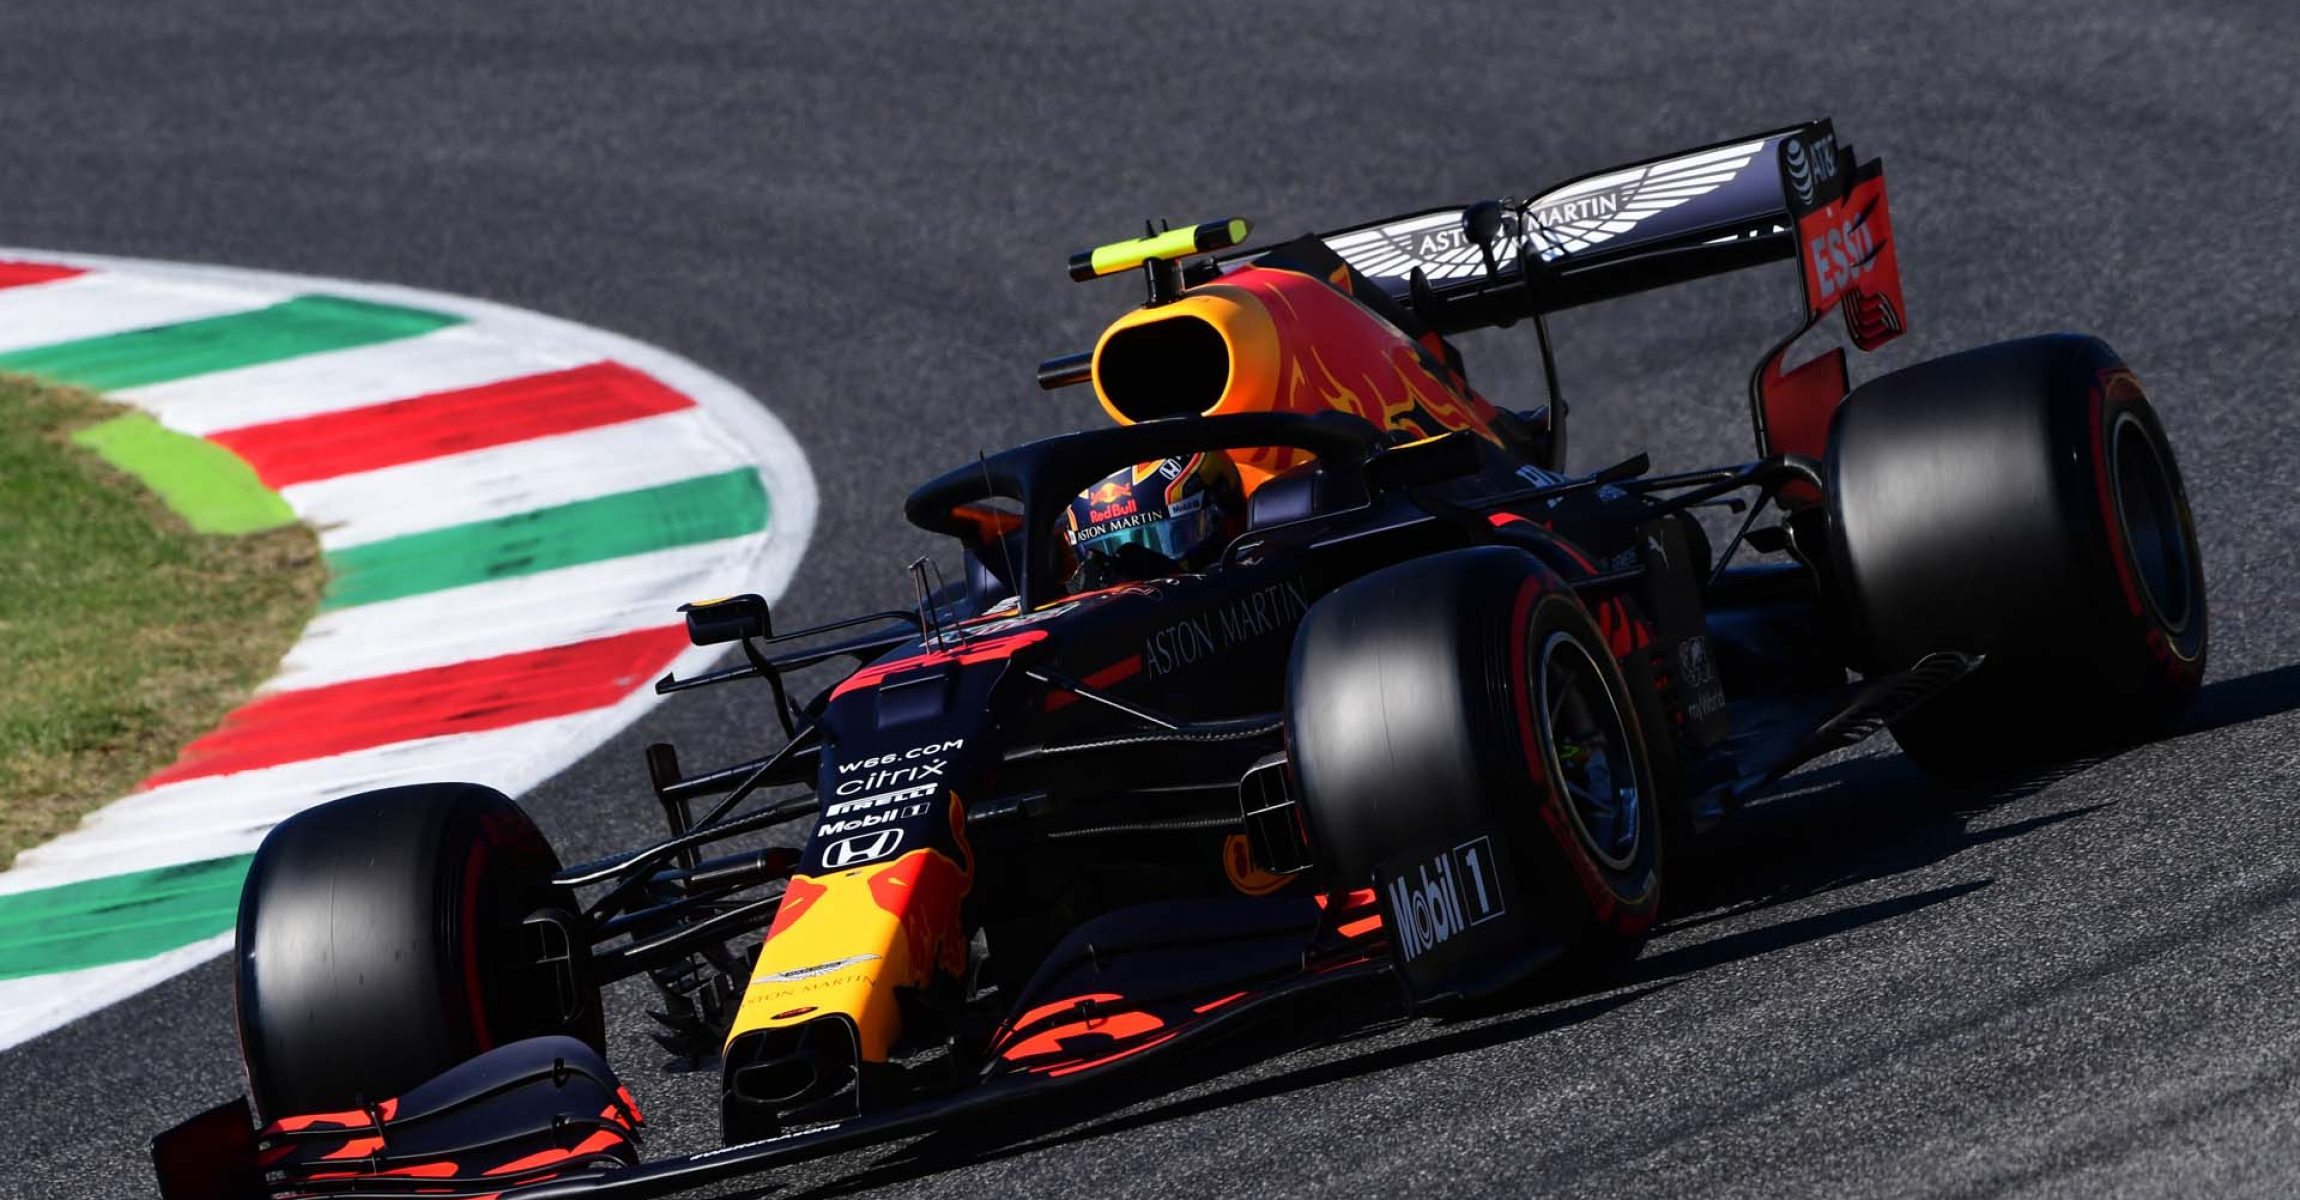 SCARPERIA, ITALY - SEPTEMBER 12: Alexander Albon of Thailand driving the (23) Aston Martin Red Bull Racing RB16 on track during qualifying for the F1 Grand Prix of Tuscany at Mugello Circuit on September 12, 2020 in Scarperia, Italy. (Photo by Jenifer Lorenzini - Pool/Getty Images)